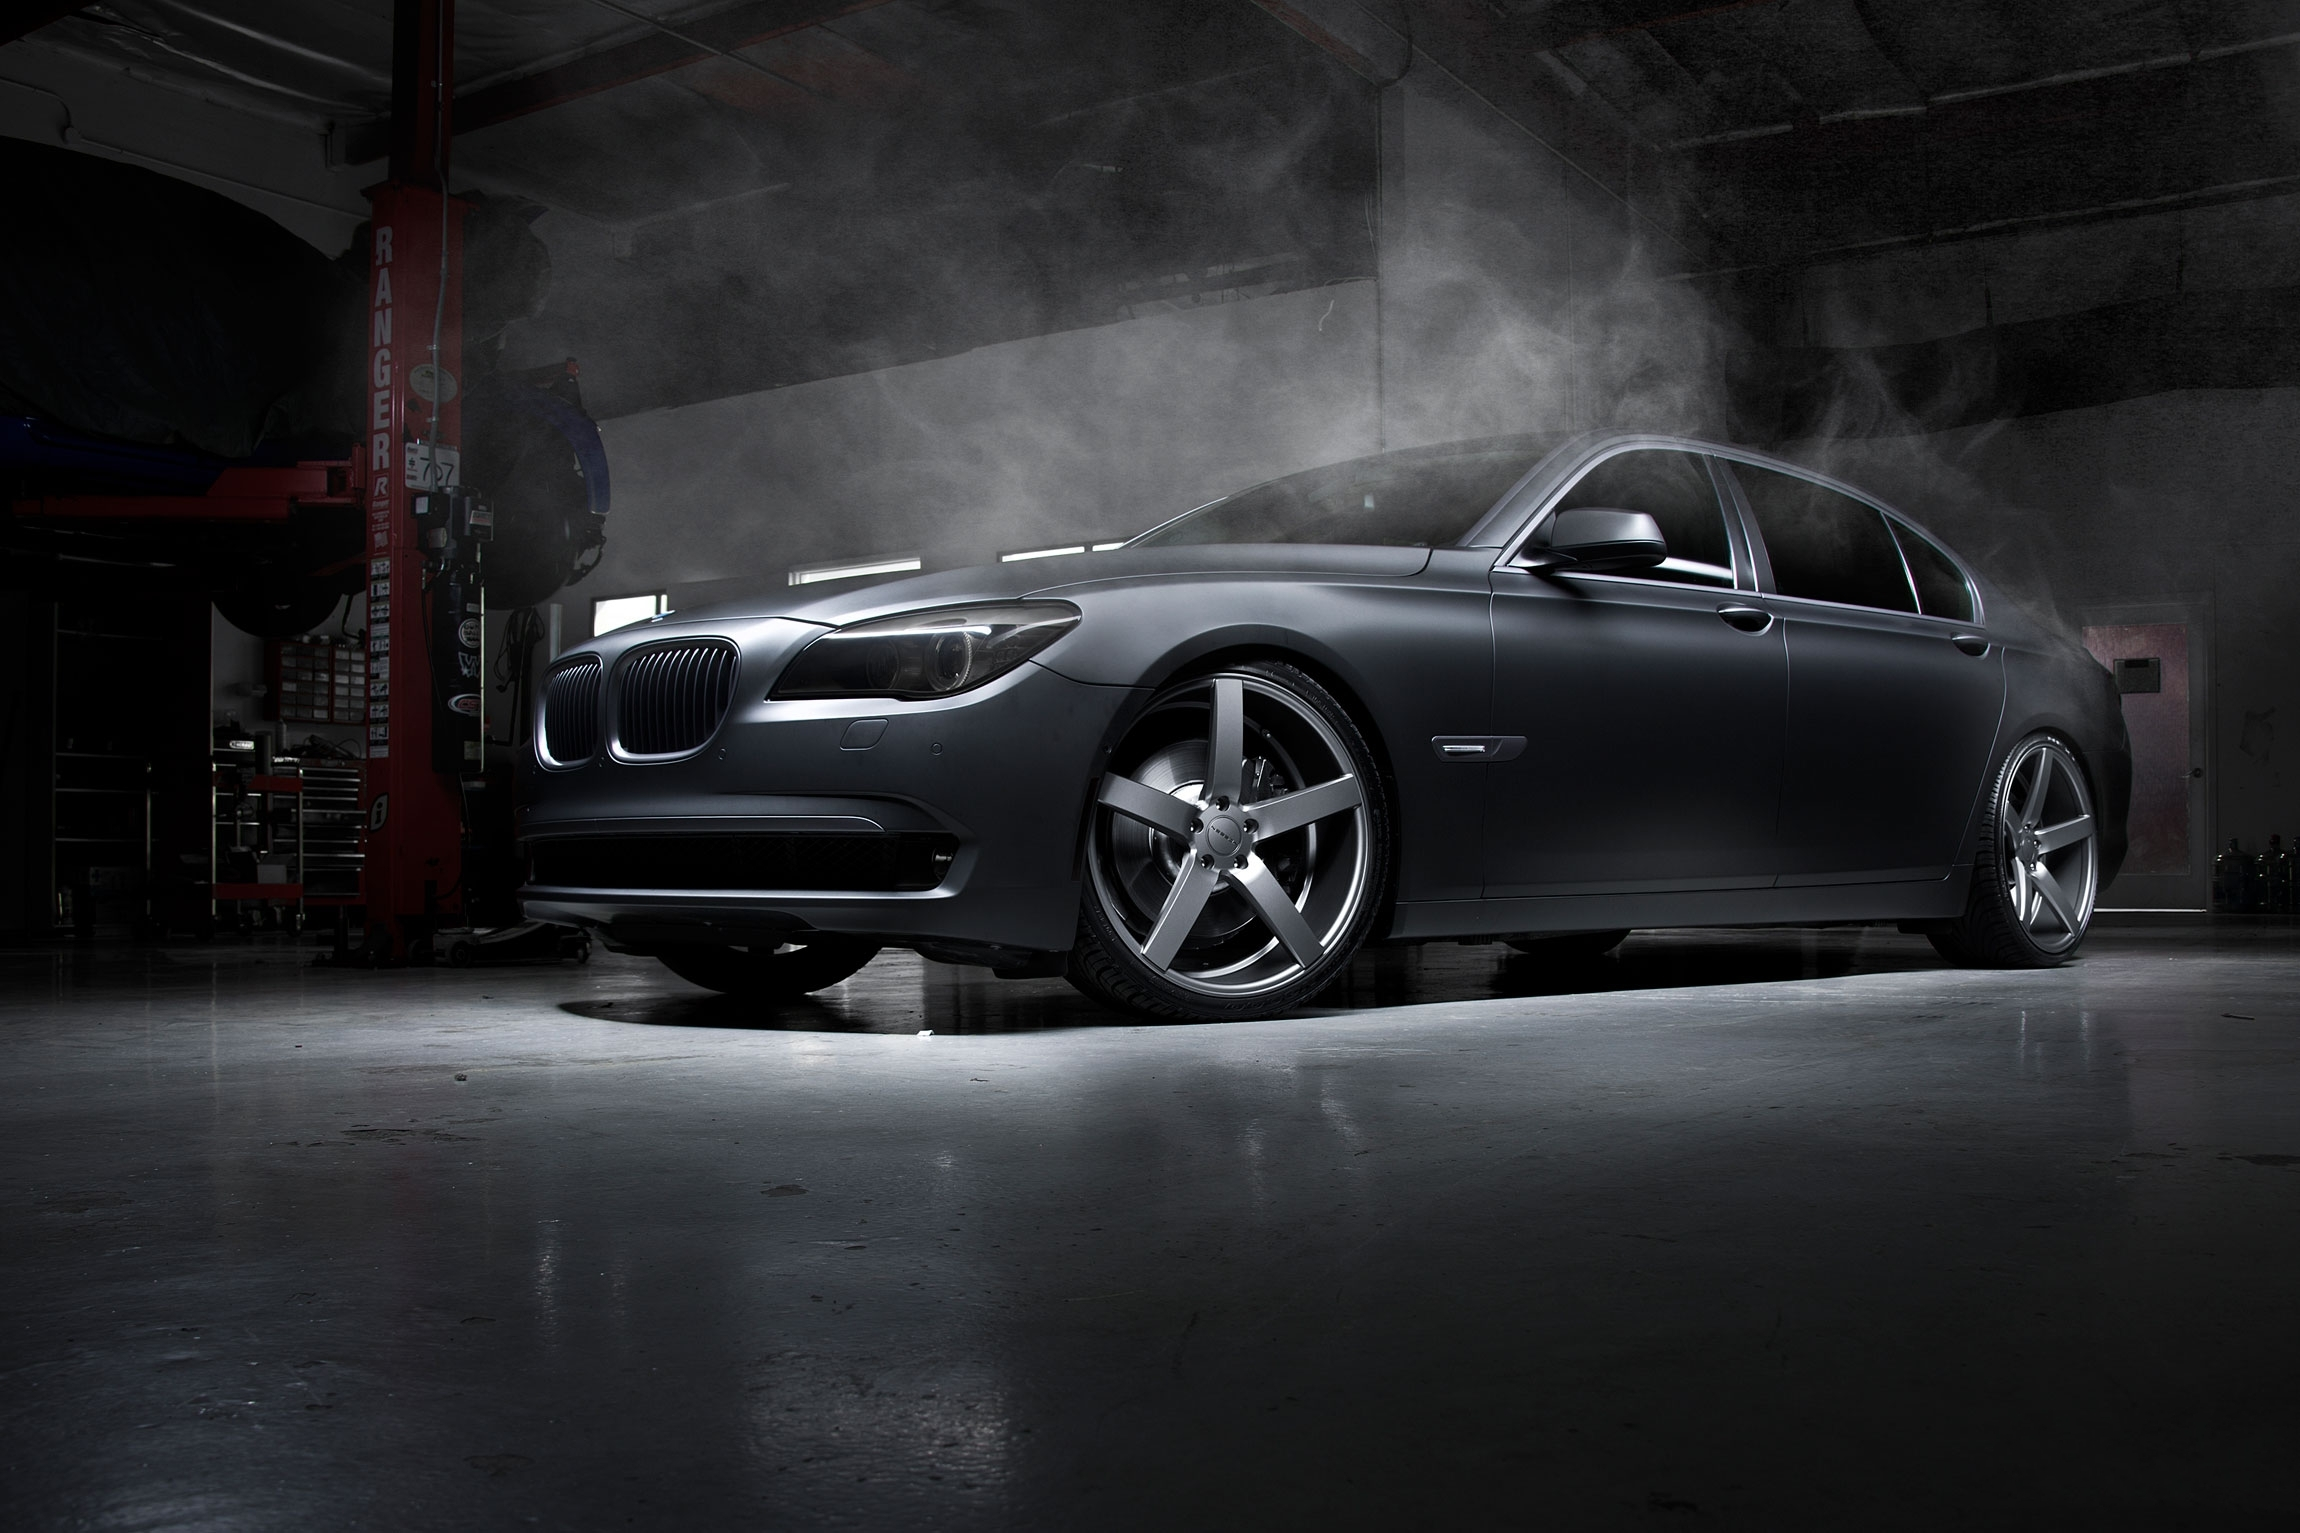 Bmw Car Tuning Garage Wheels Smoke